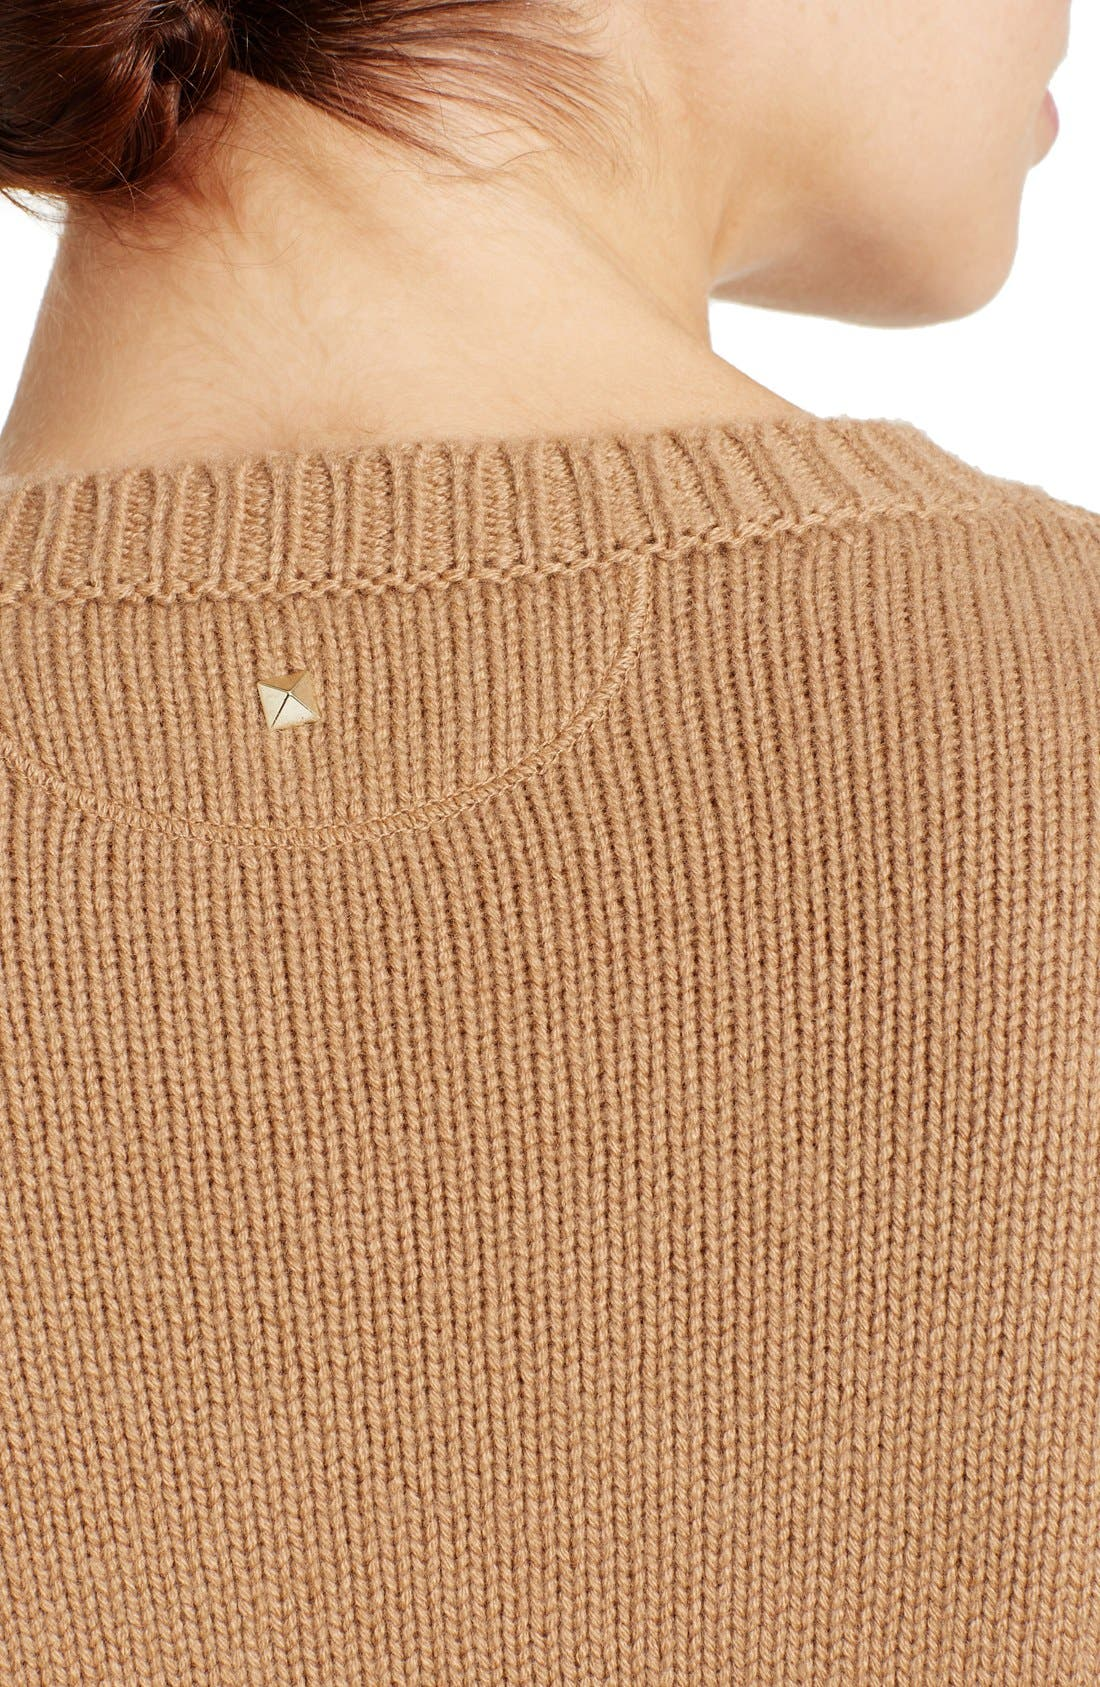 Studded Crewneck Cashmere Sweater,                             Alternate thumbnail 5, color,                             Camel